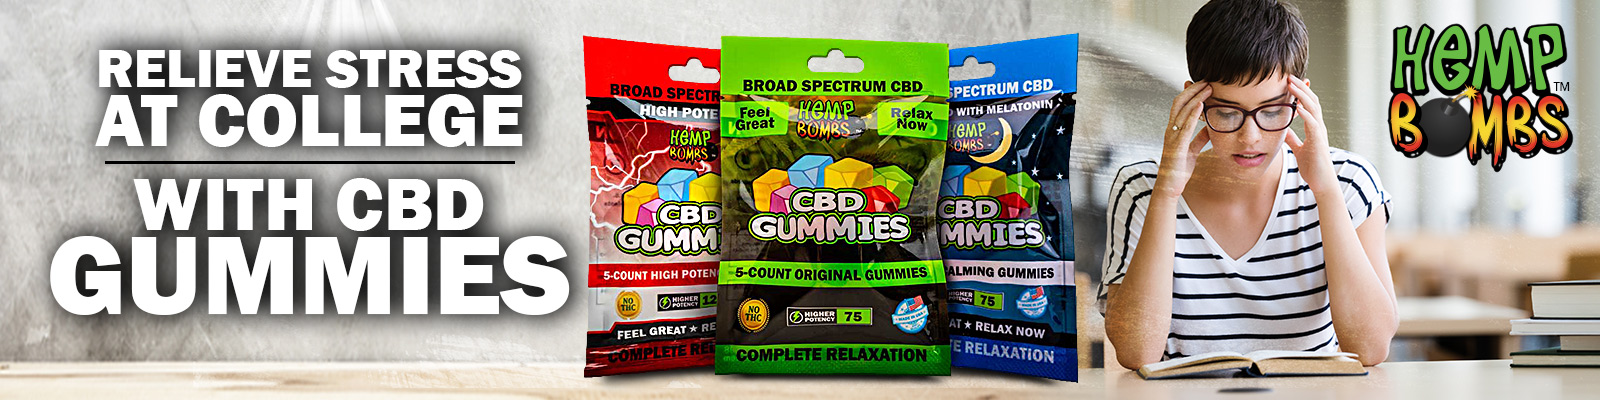 CBD-infused stress gummies for college students